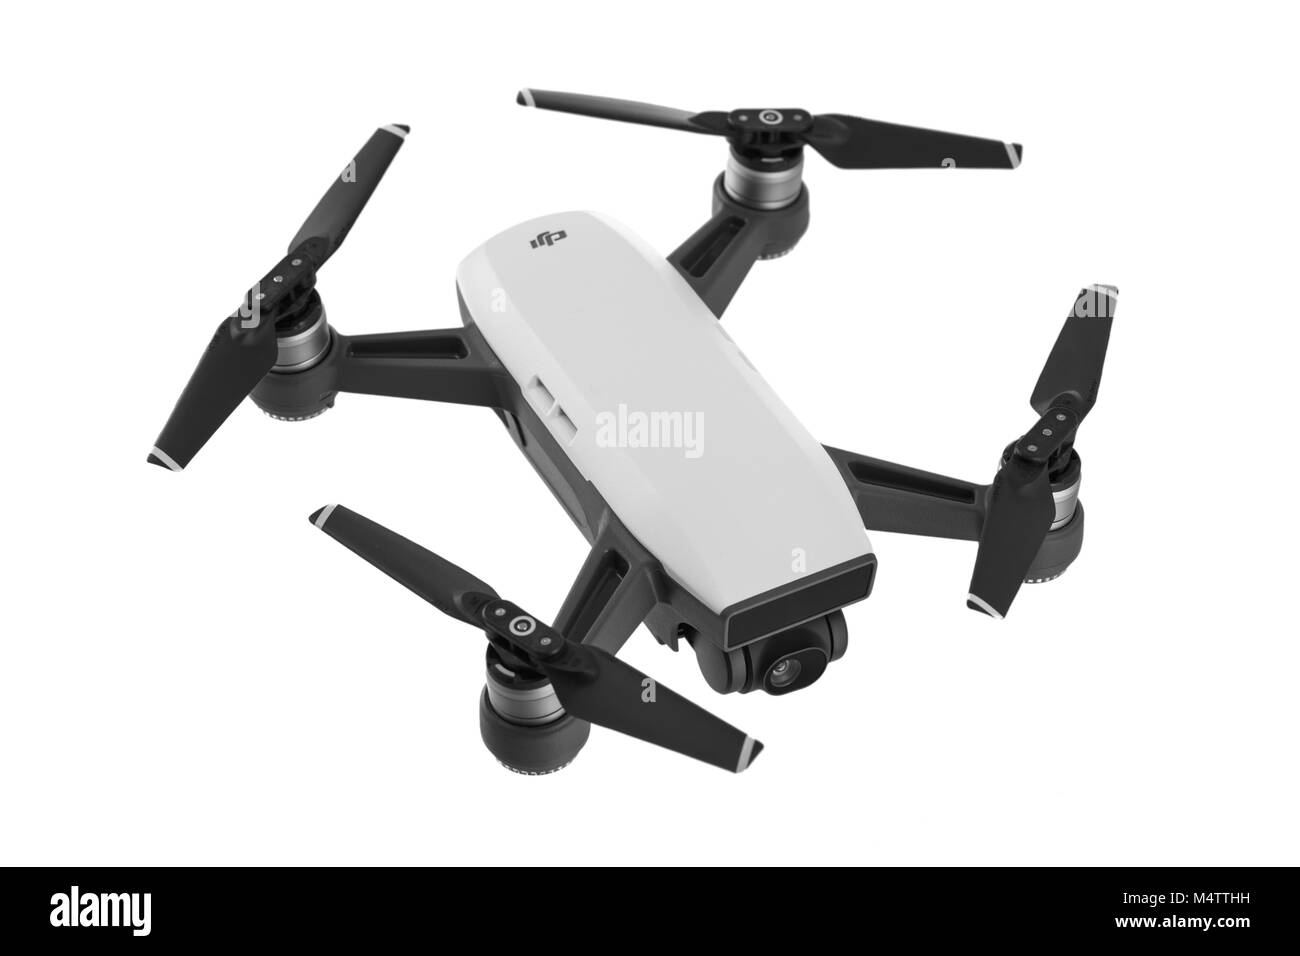 Varna, Bulgaria - February 14 ,2018: Flying drone quadcopter Dji Spark is mini drone that features all of DJI's - Stock Image